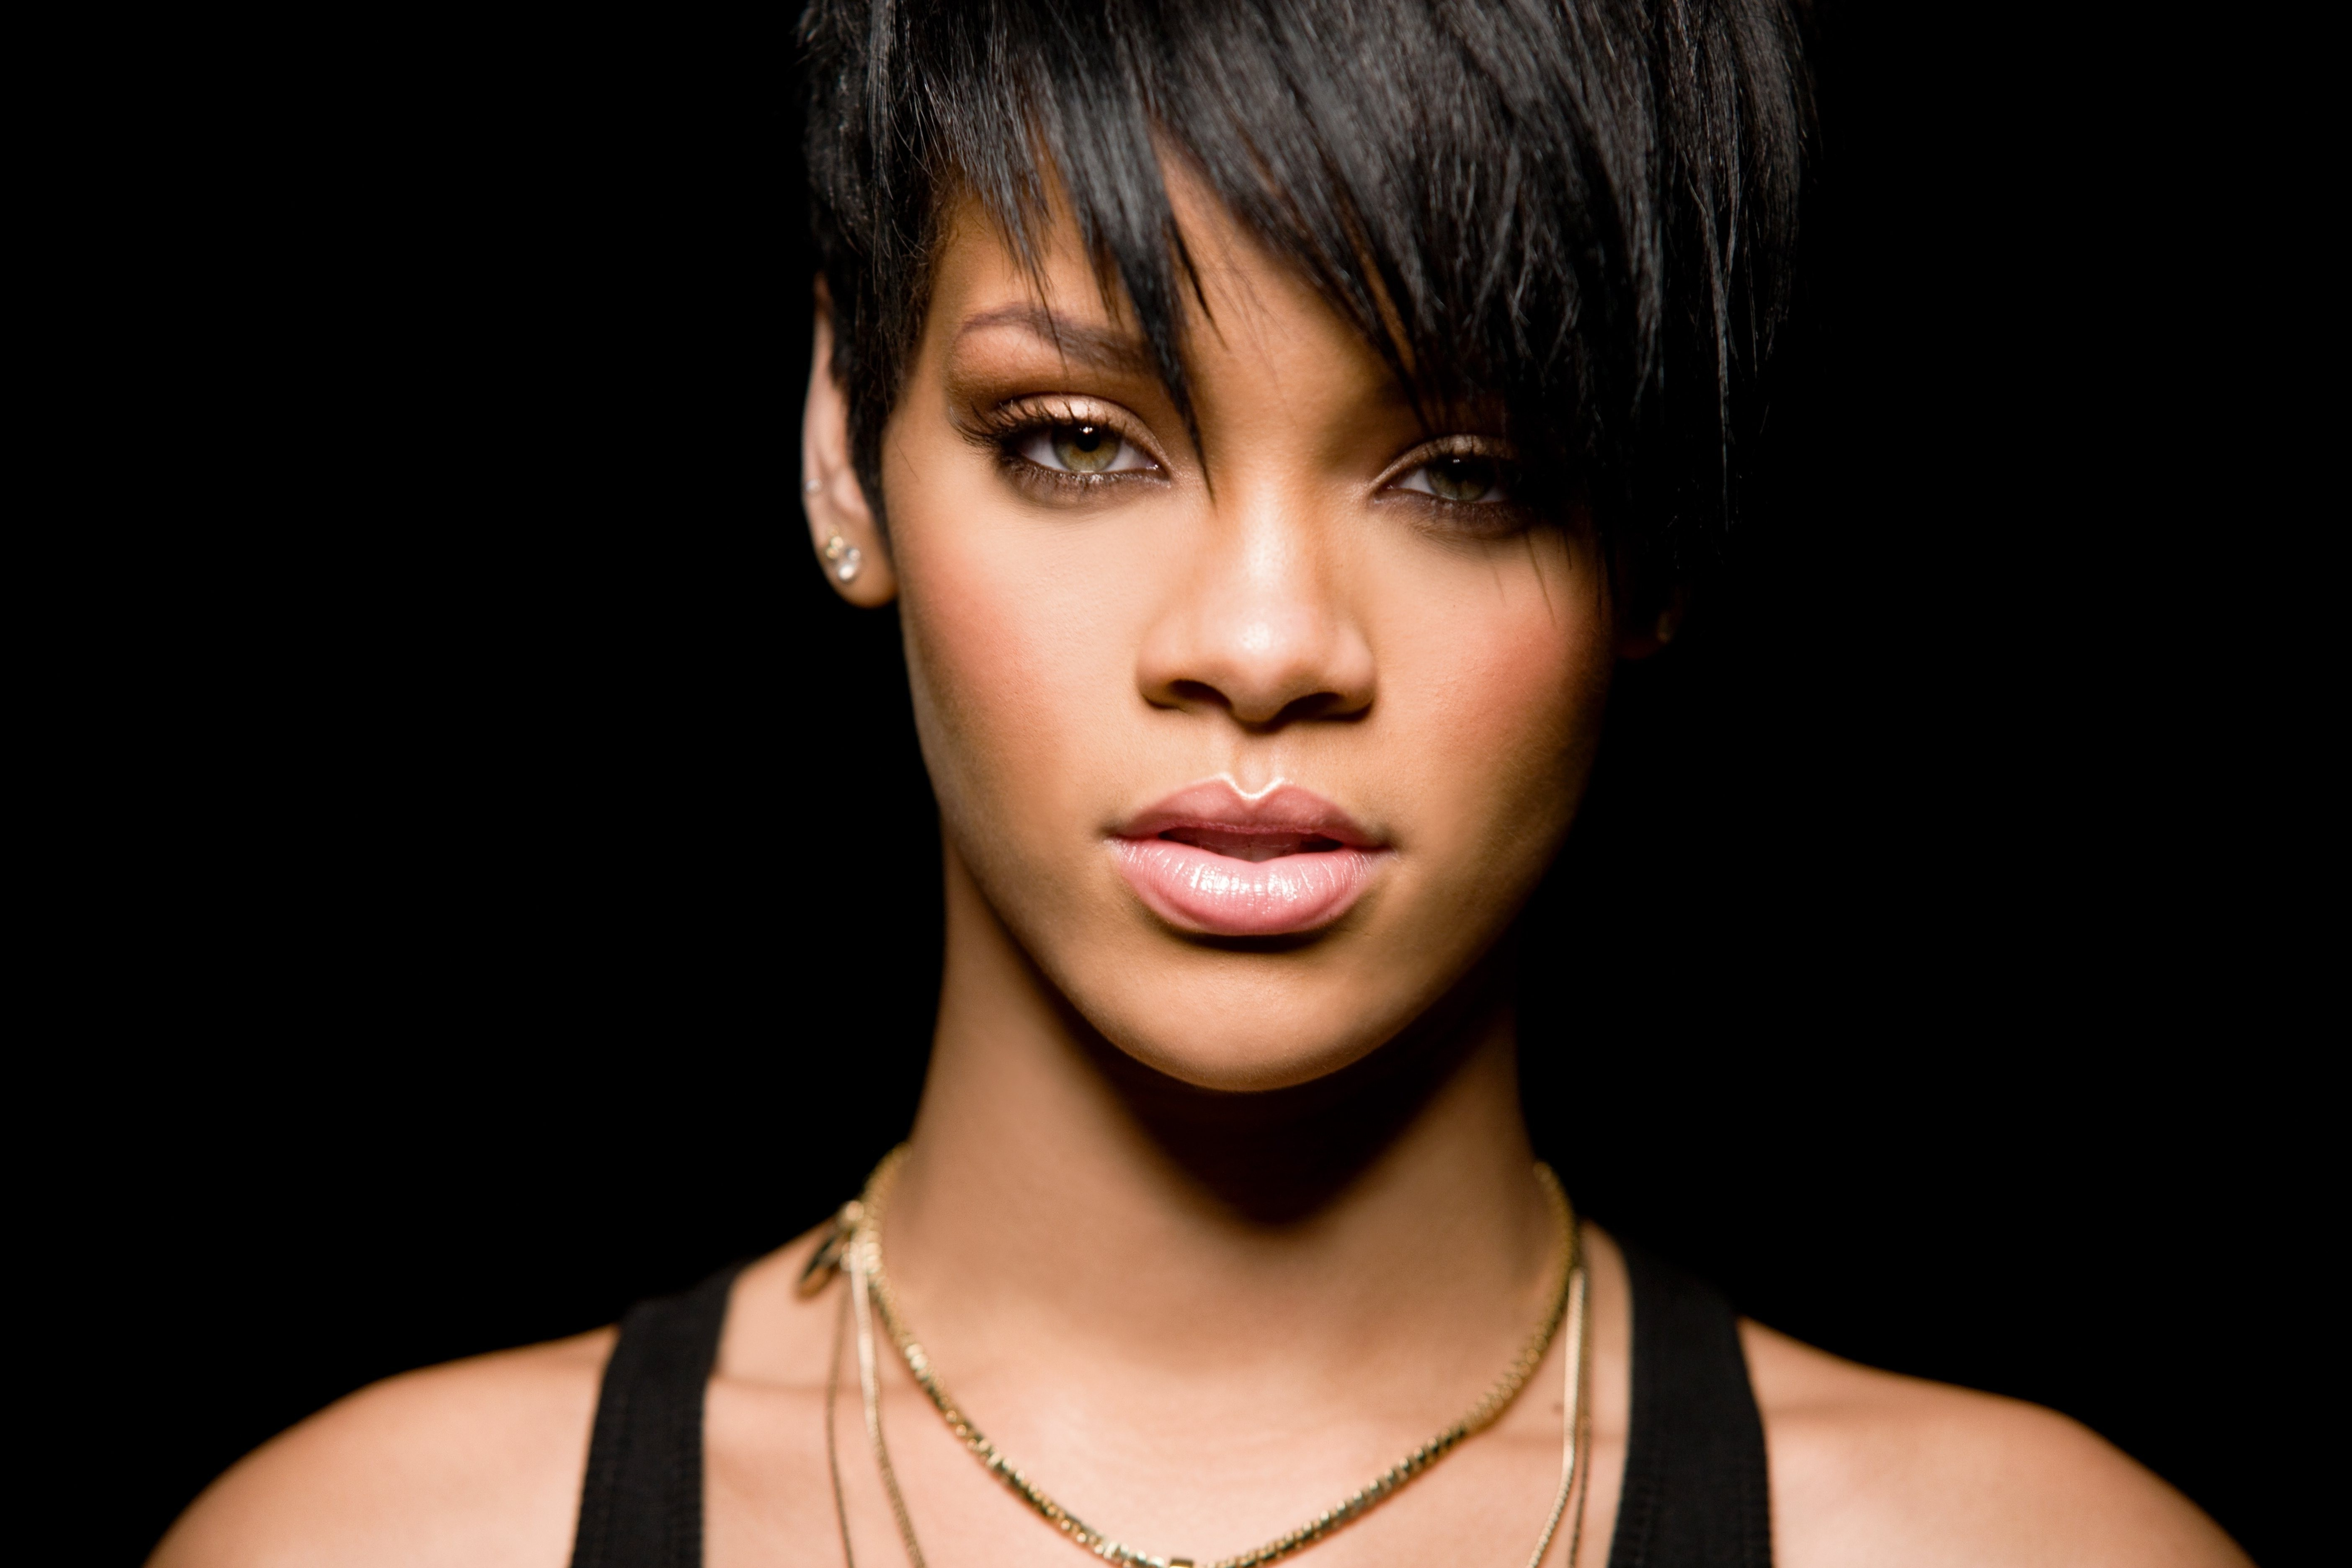 Top 10 Rihanna Wallpapers